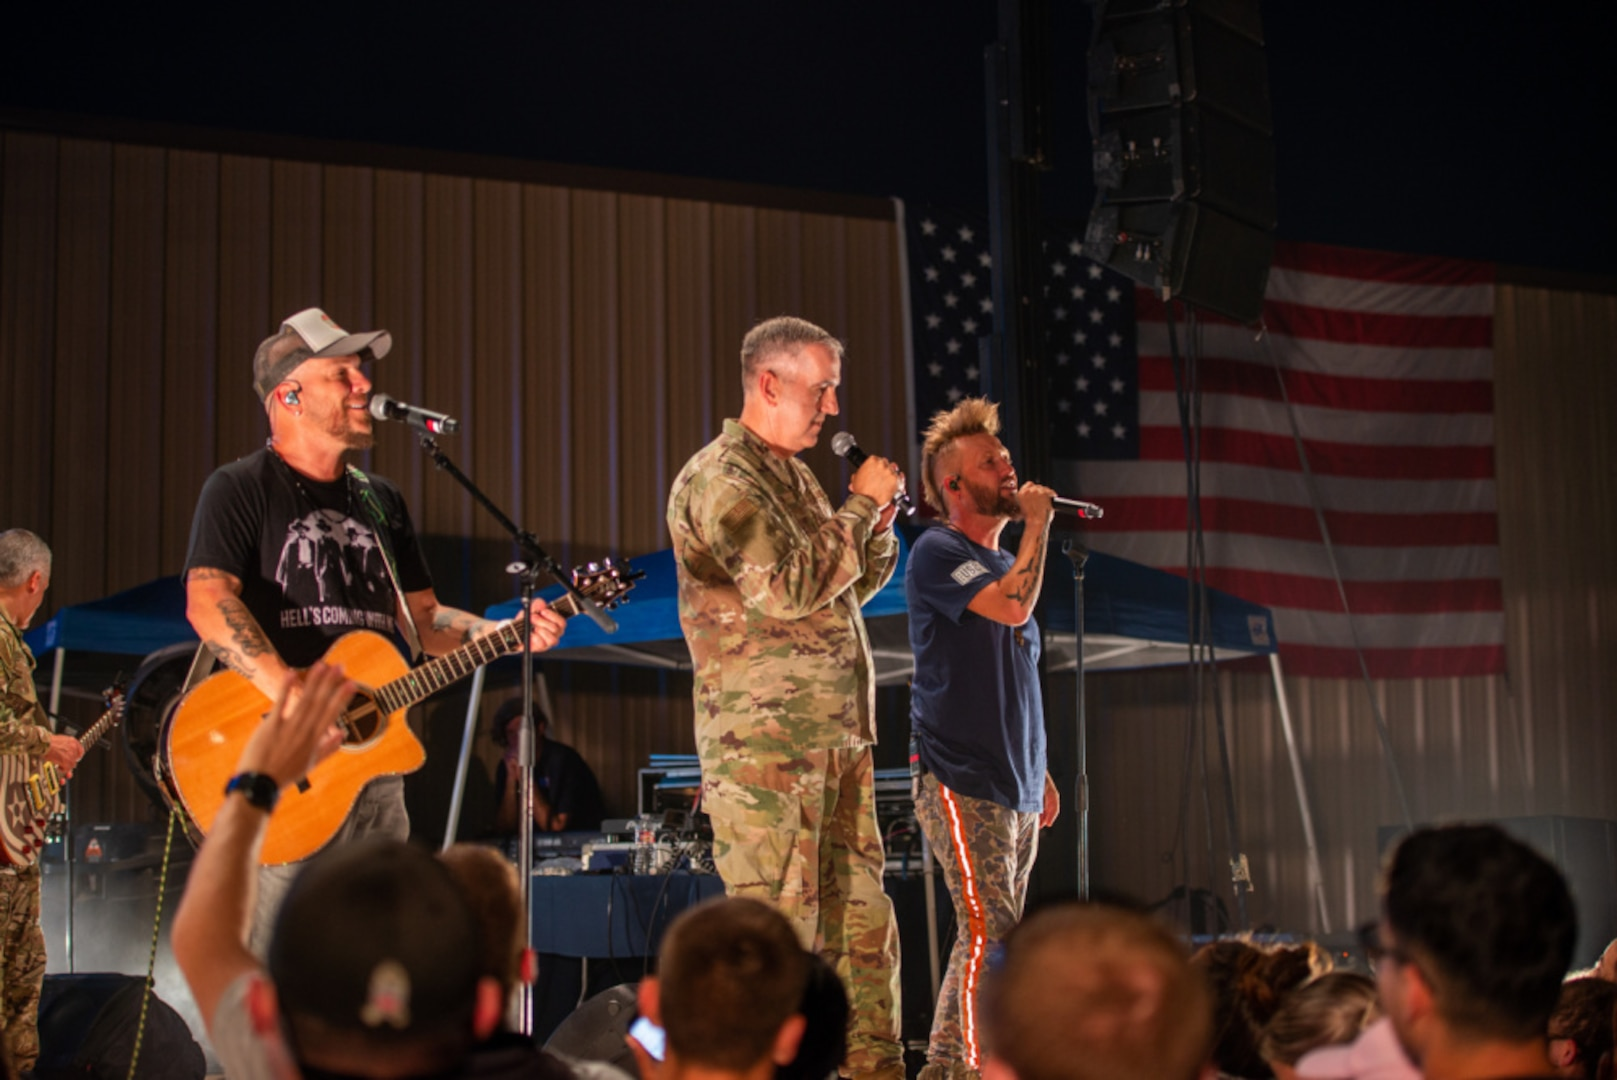 U.S. Air Force Gen. John E. Hyten performs on stage with the band LOCASH during the USO Summer Tour at Joint Base San Antonio-Lackland.